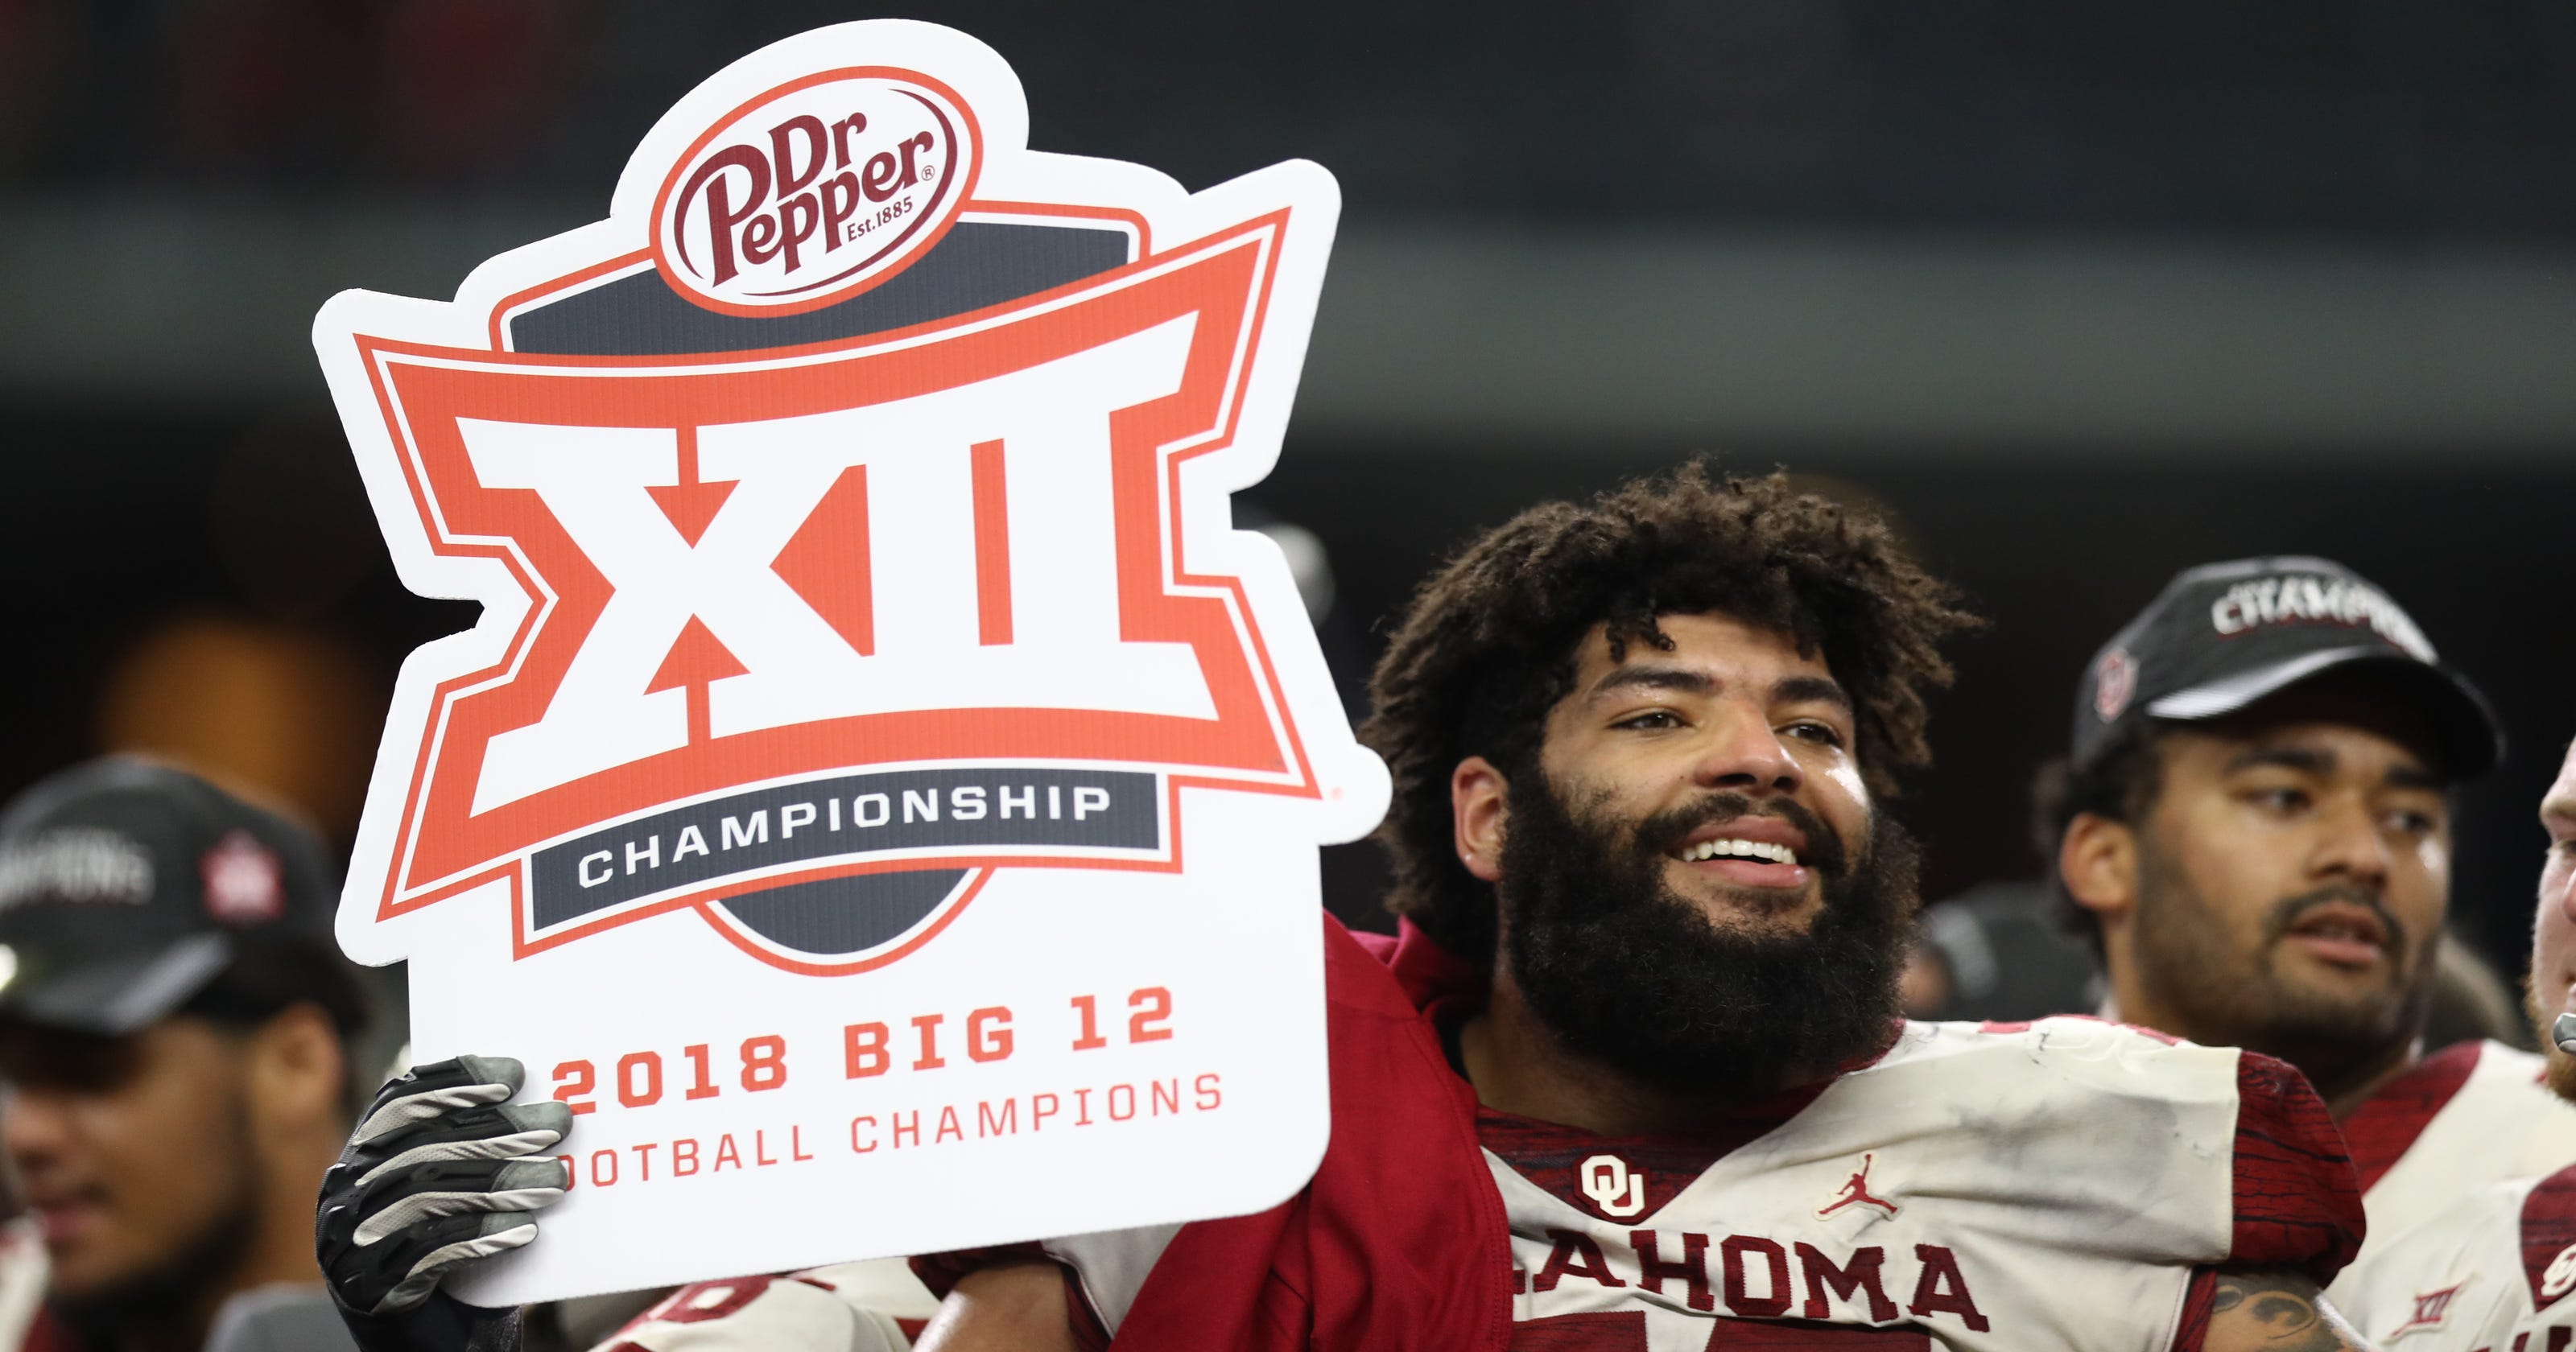 Orange Bowl: Pineville can see Cody Ford, Sooners take on